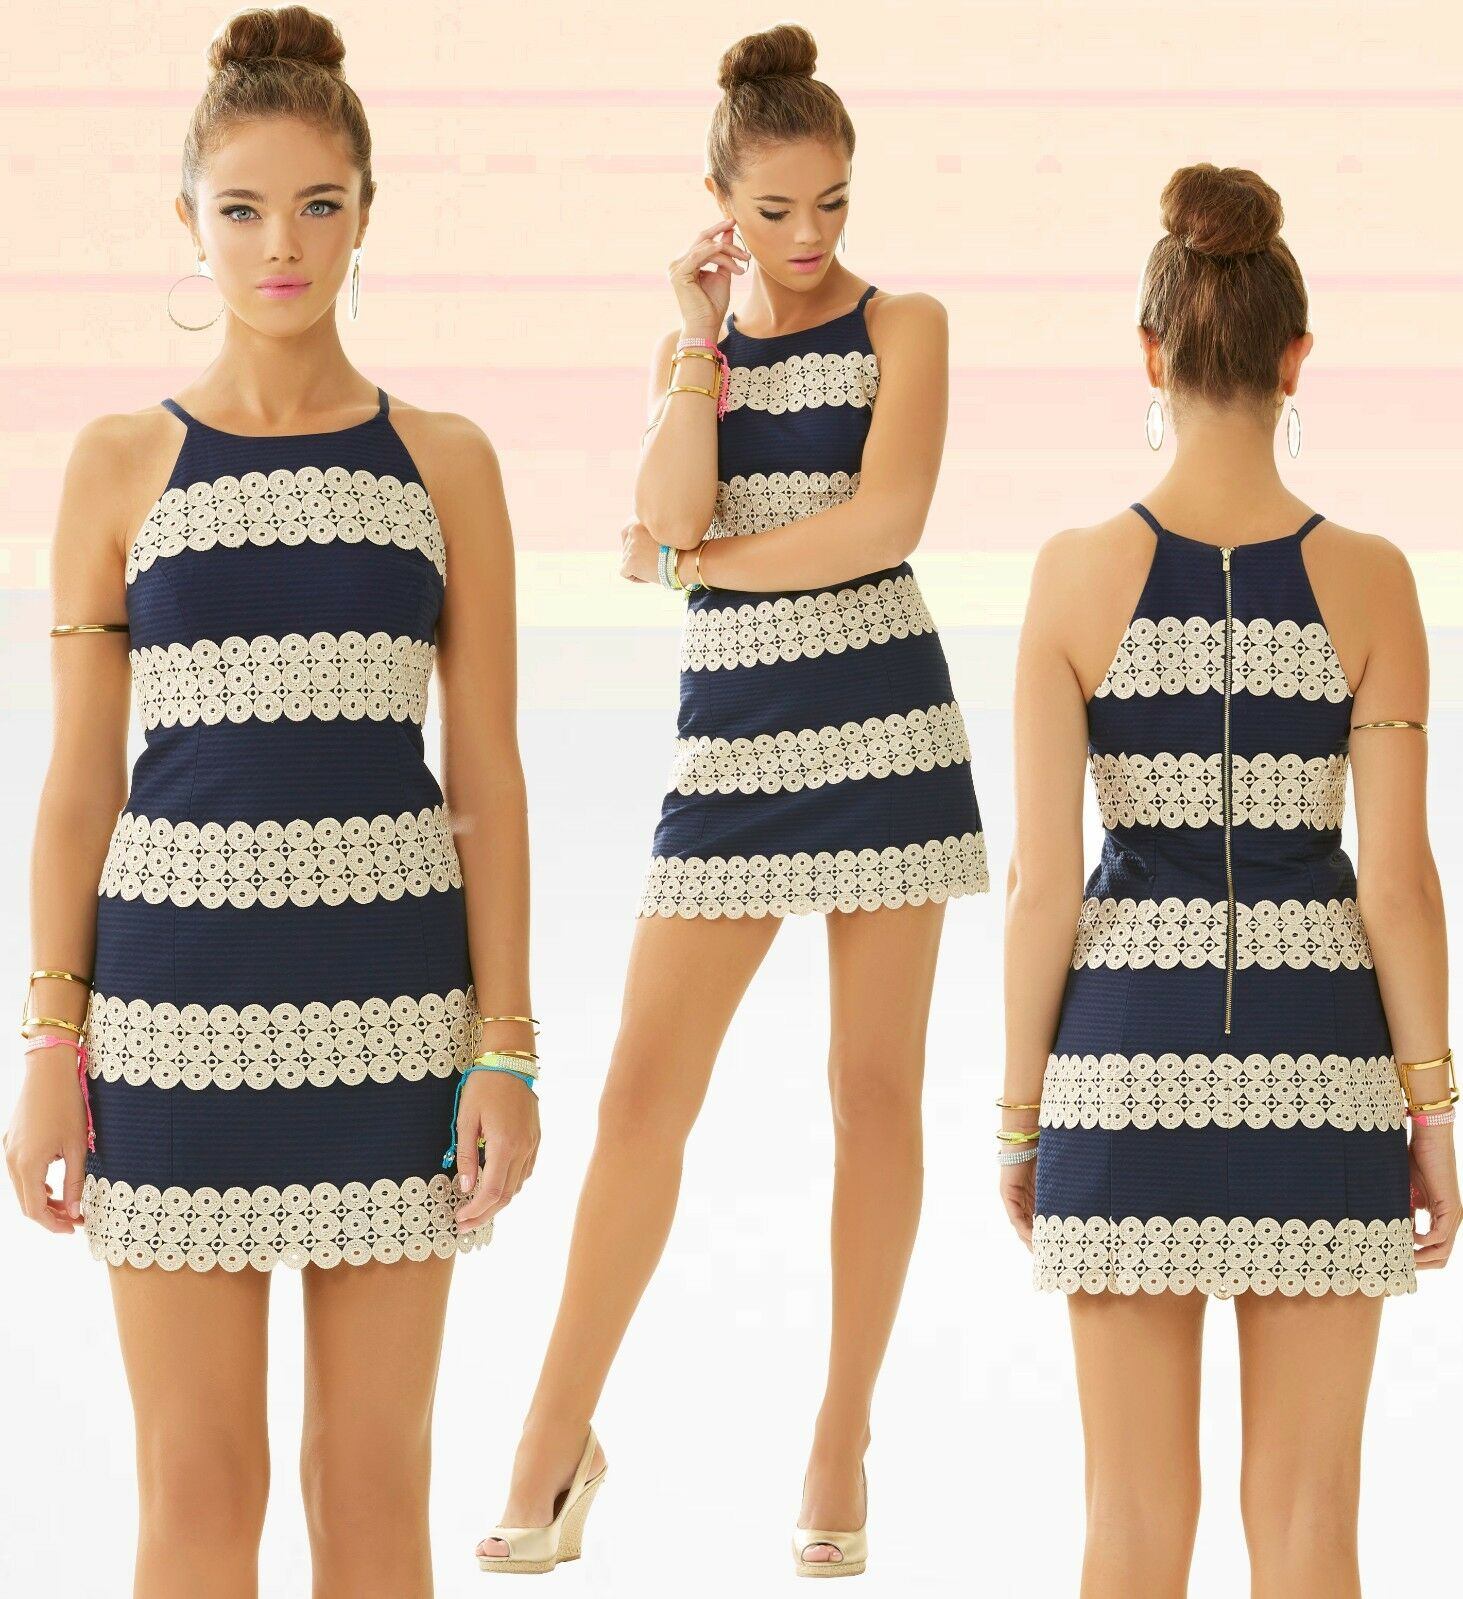 288 Lilly Pulitzer Annabelle True Navy gold Lace Annabelle Stripe Shift Dress